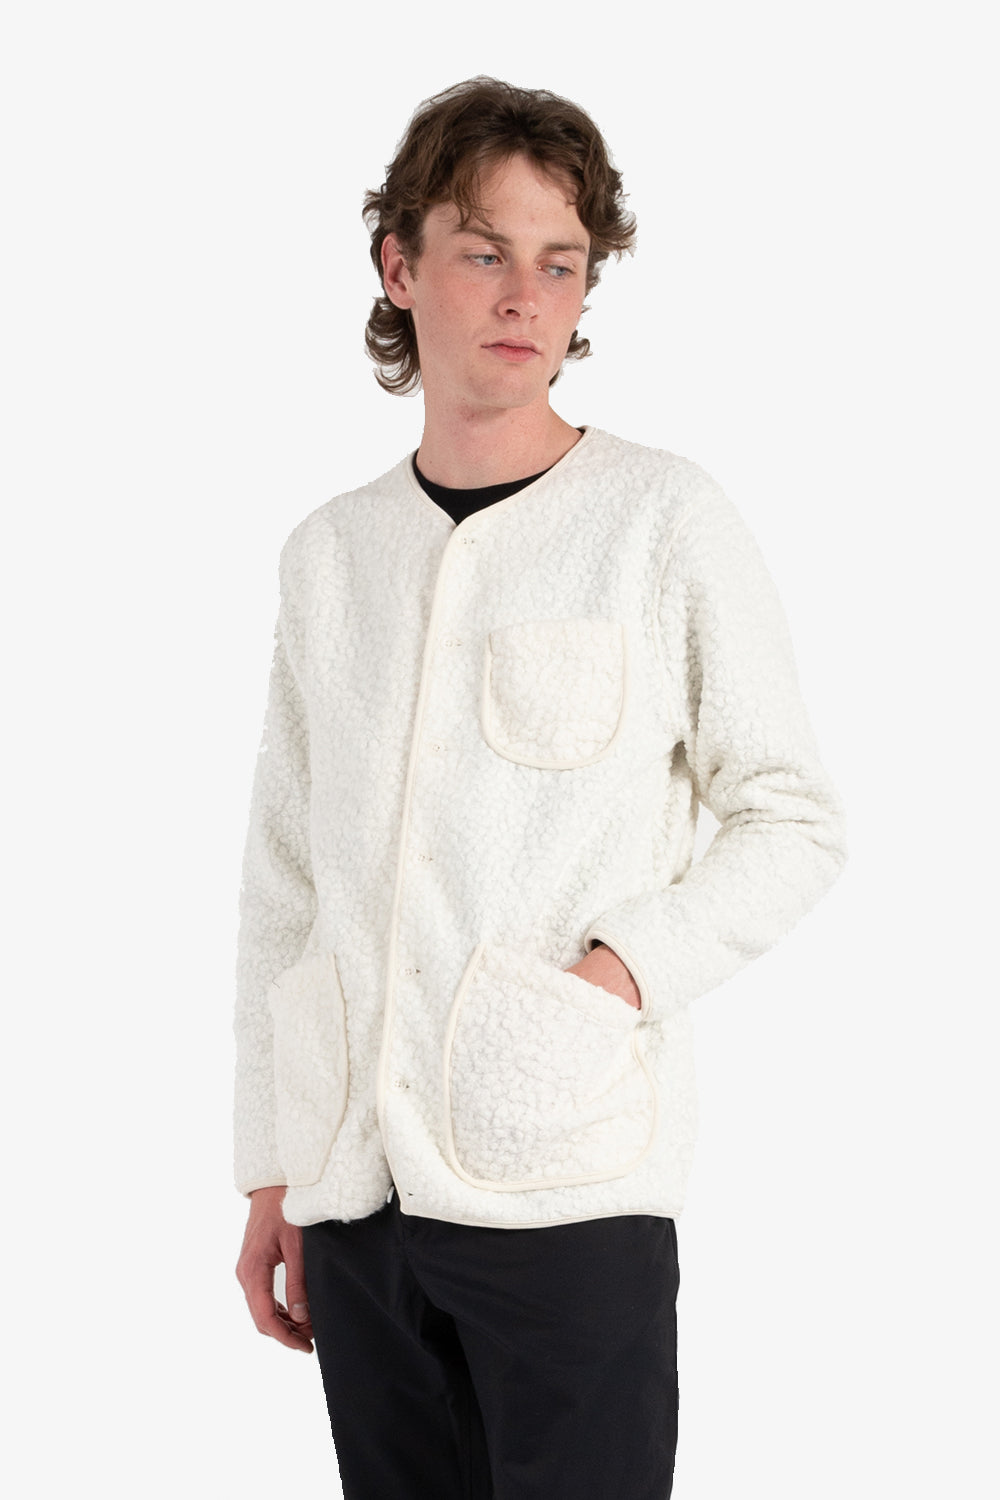 kestin neist fleece white